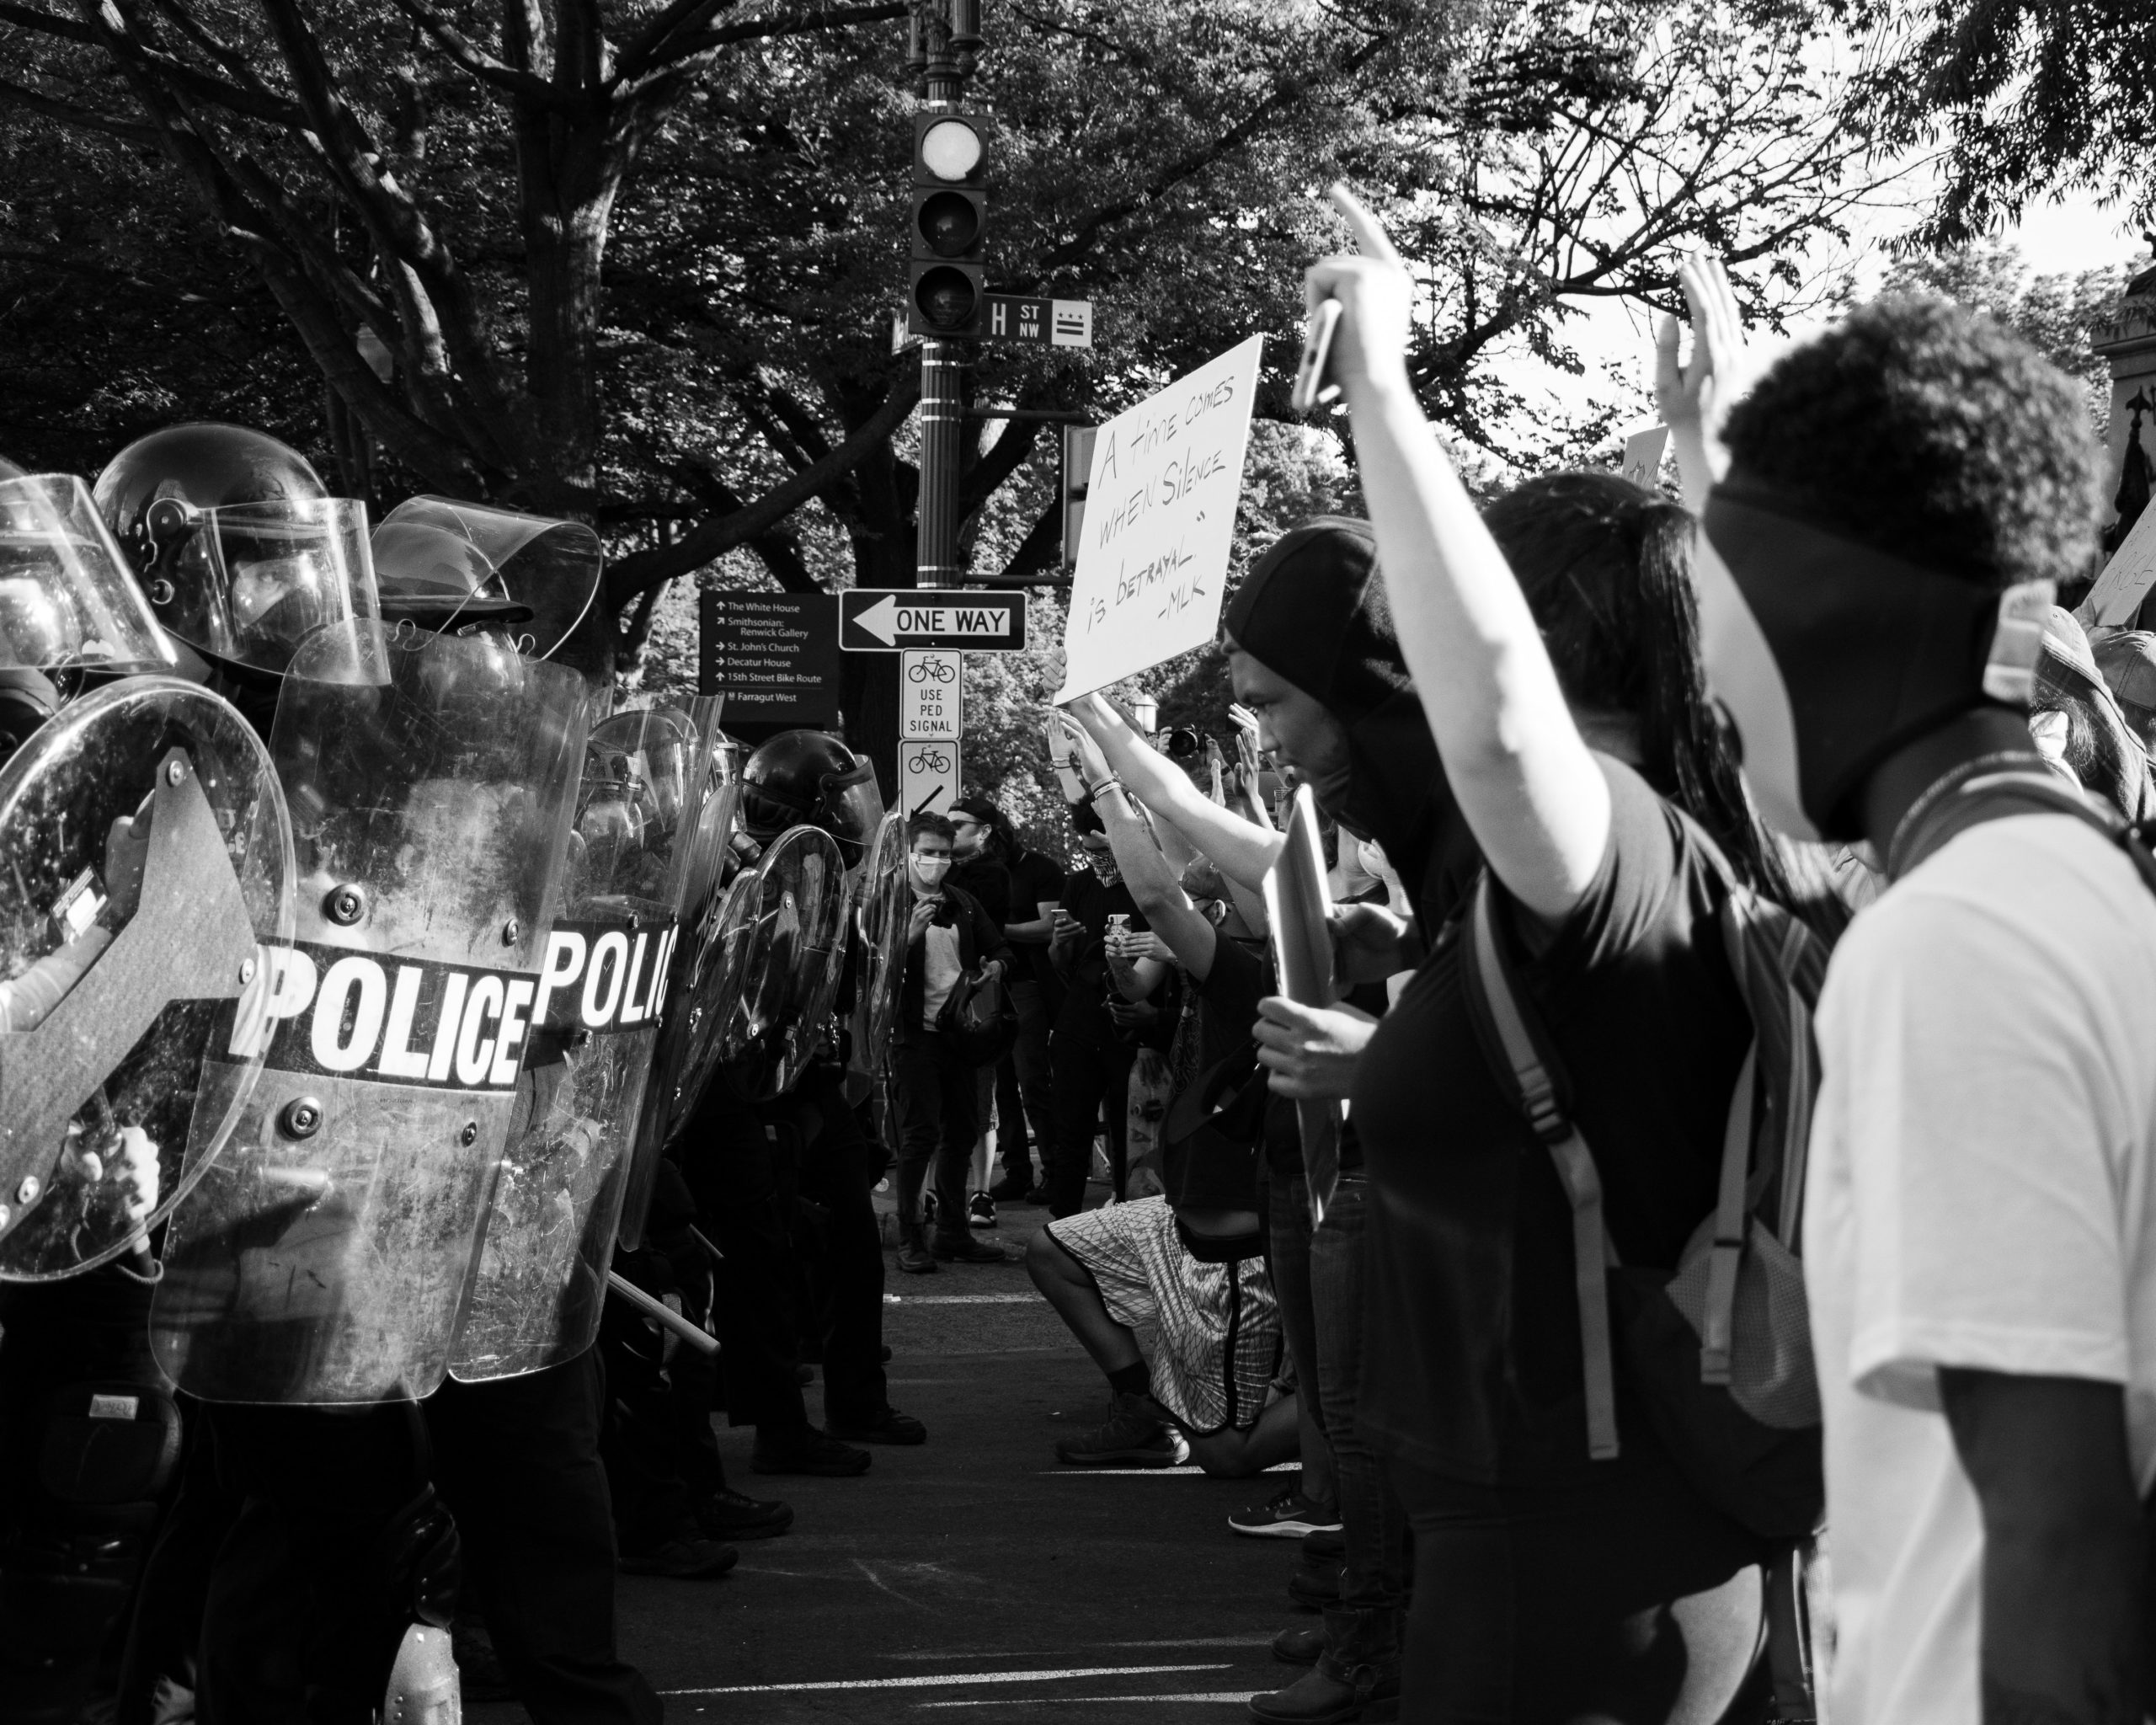 A group o Police men facing a group of protesters